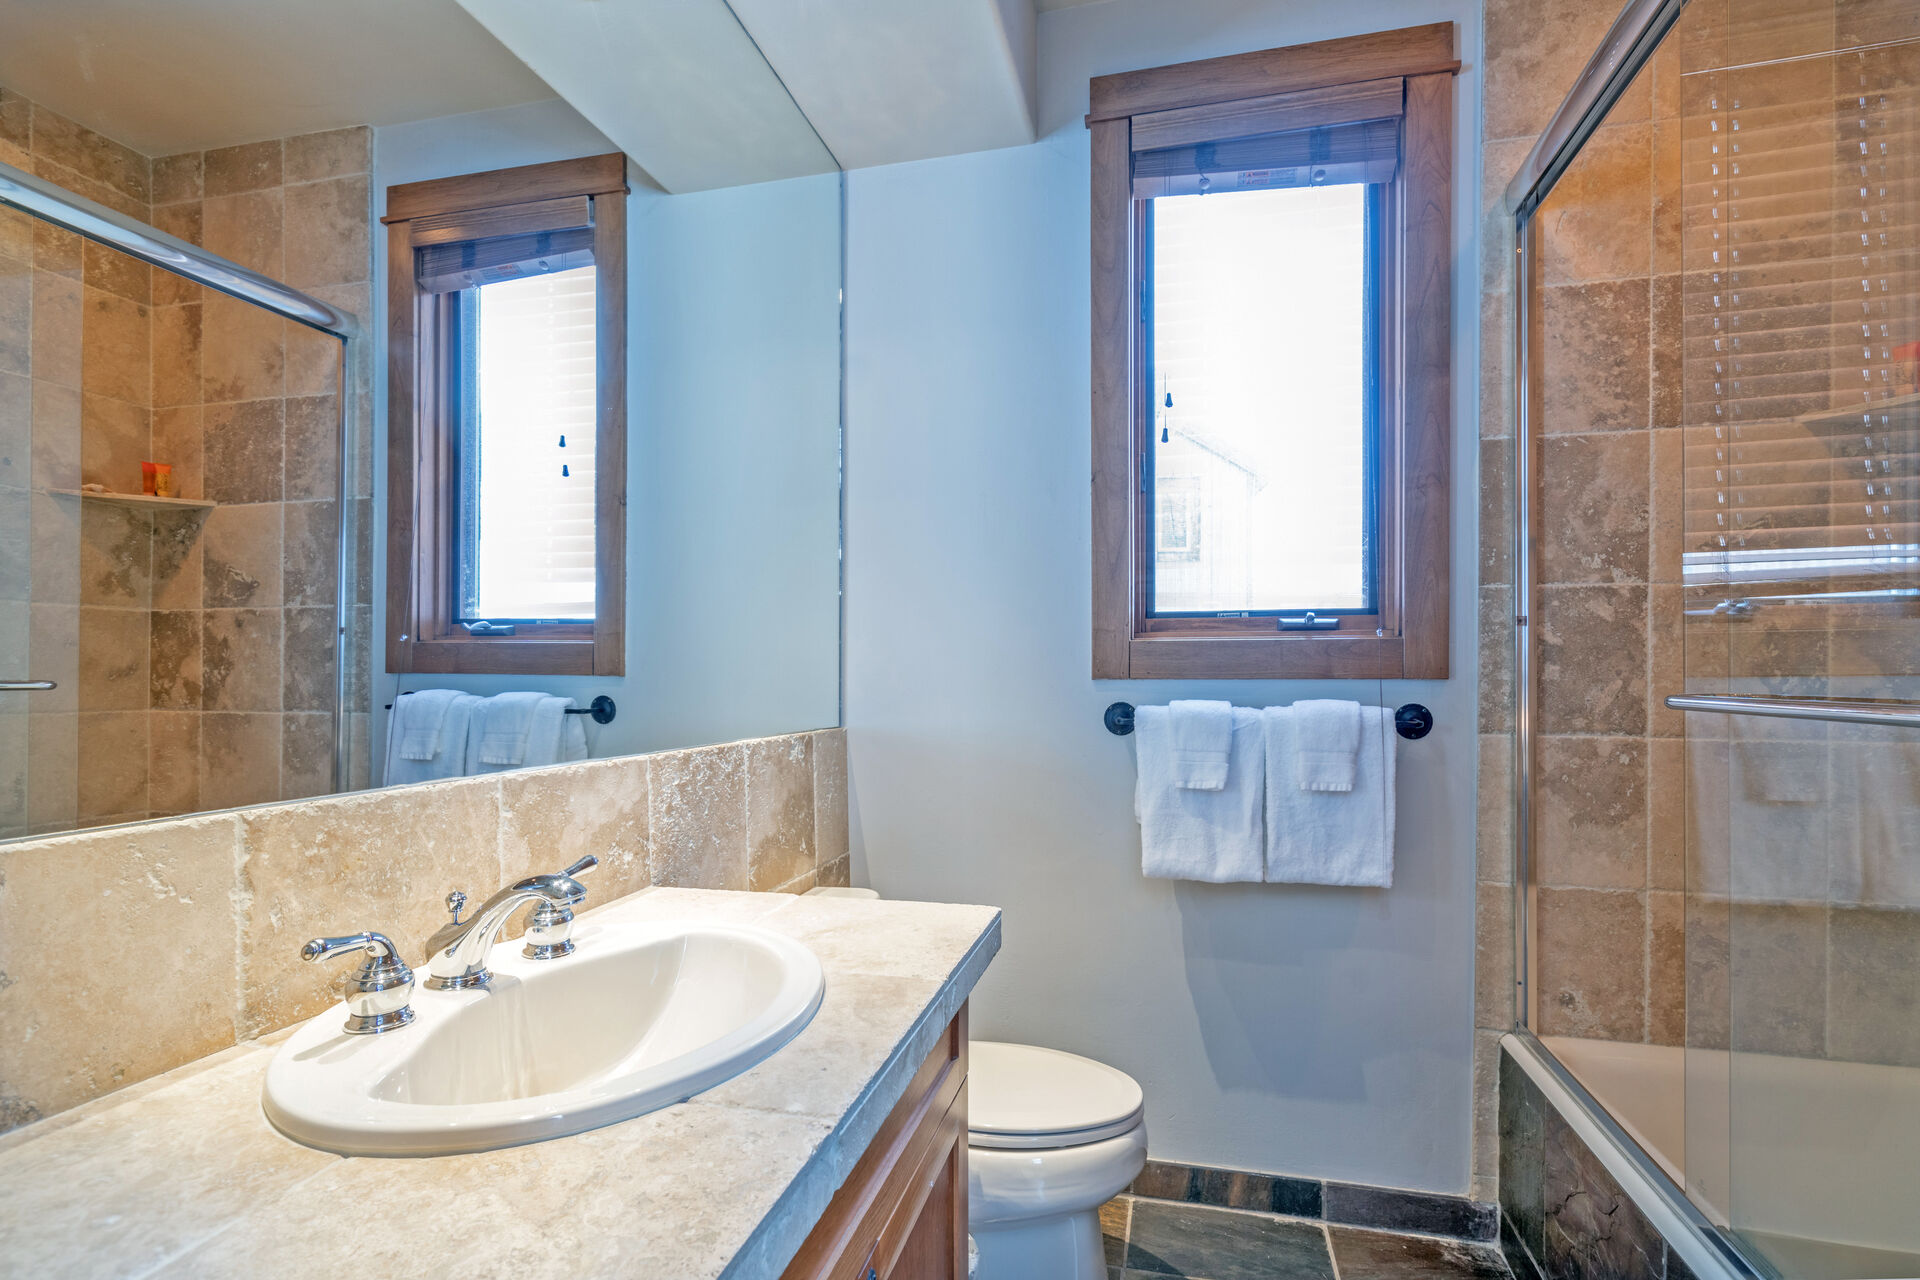 Bathroom with extra large mirror